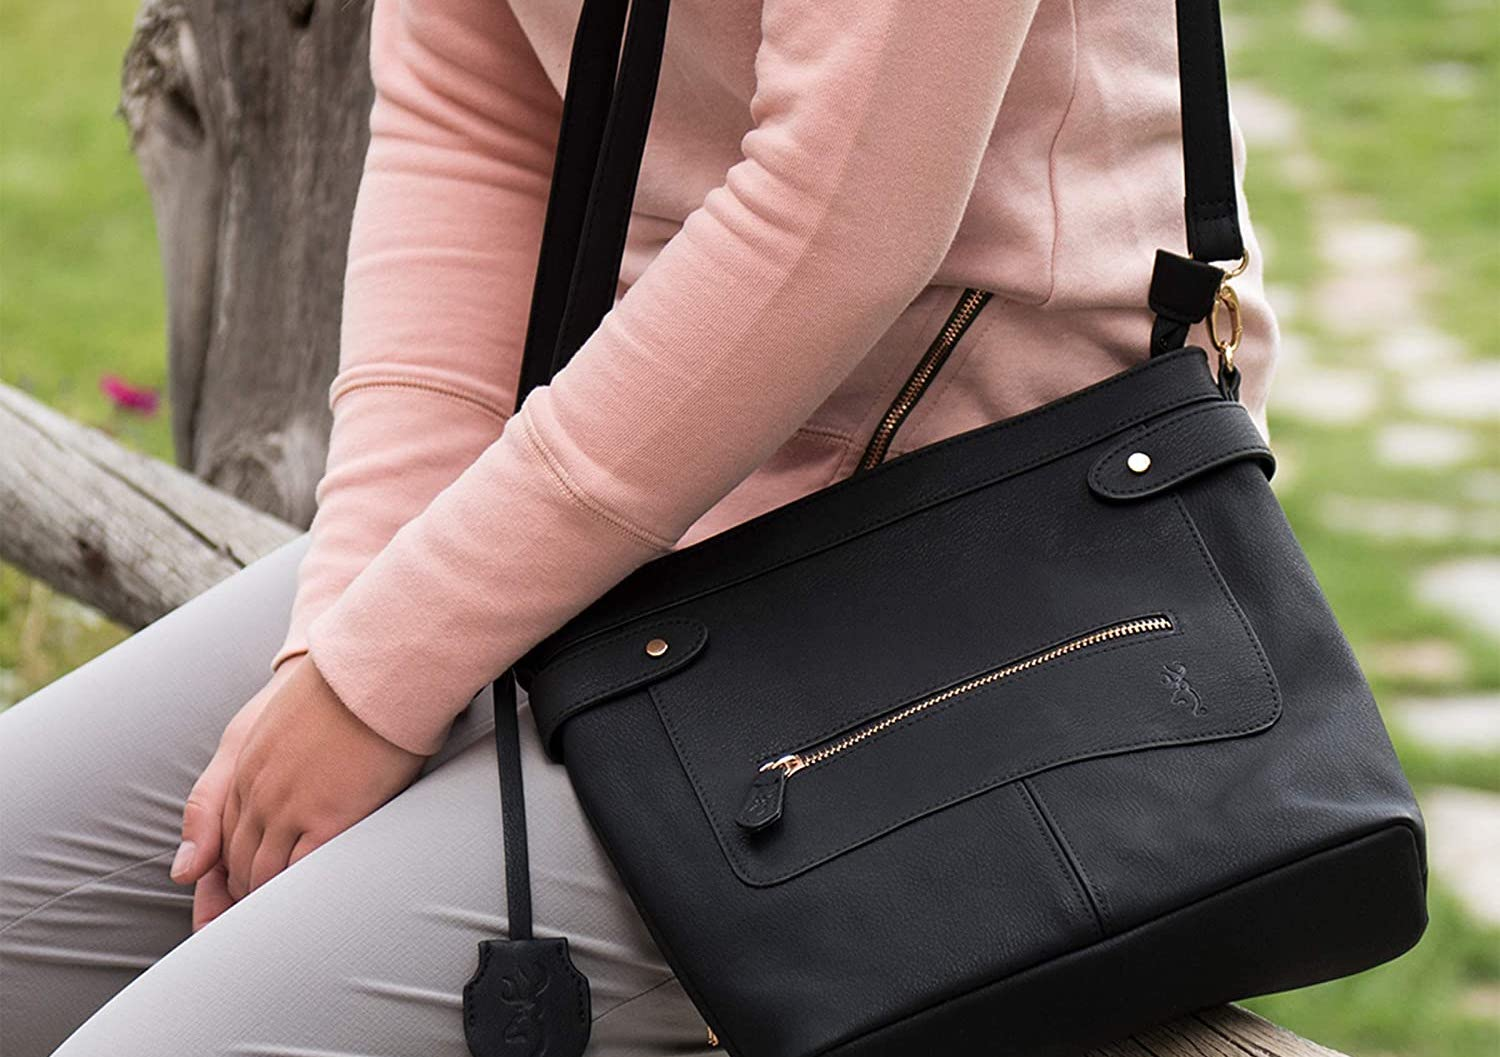 Concealed Carry Purse Made in the USA – The Top 10